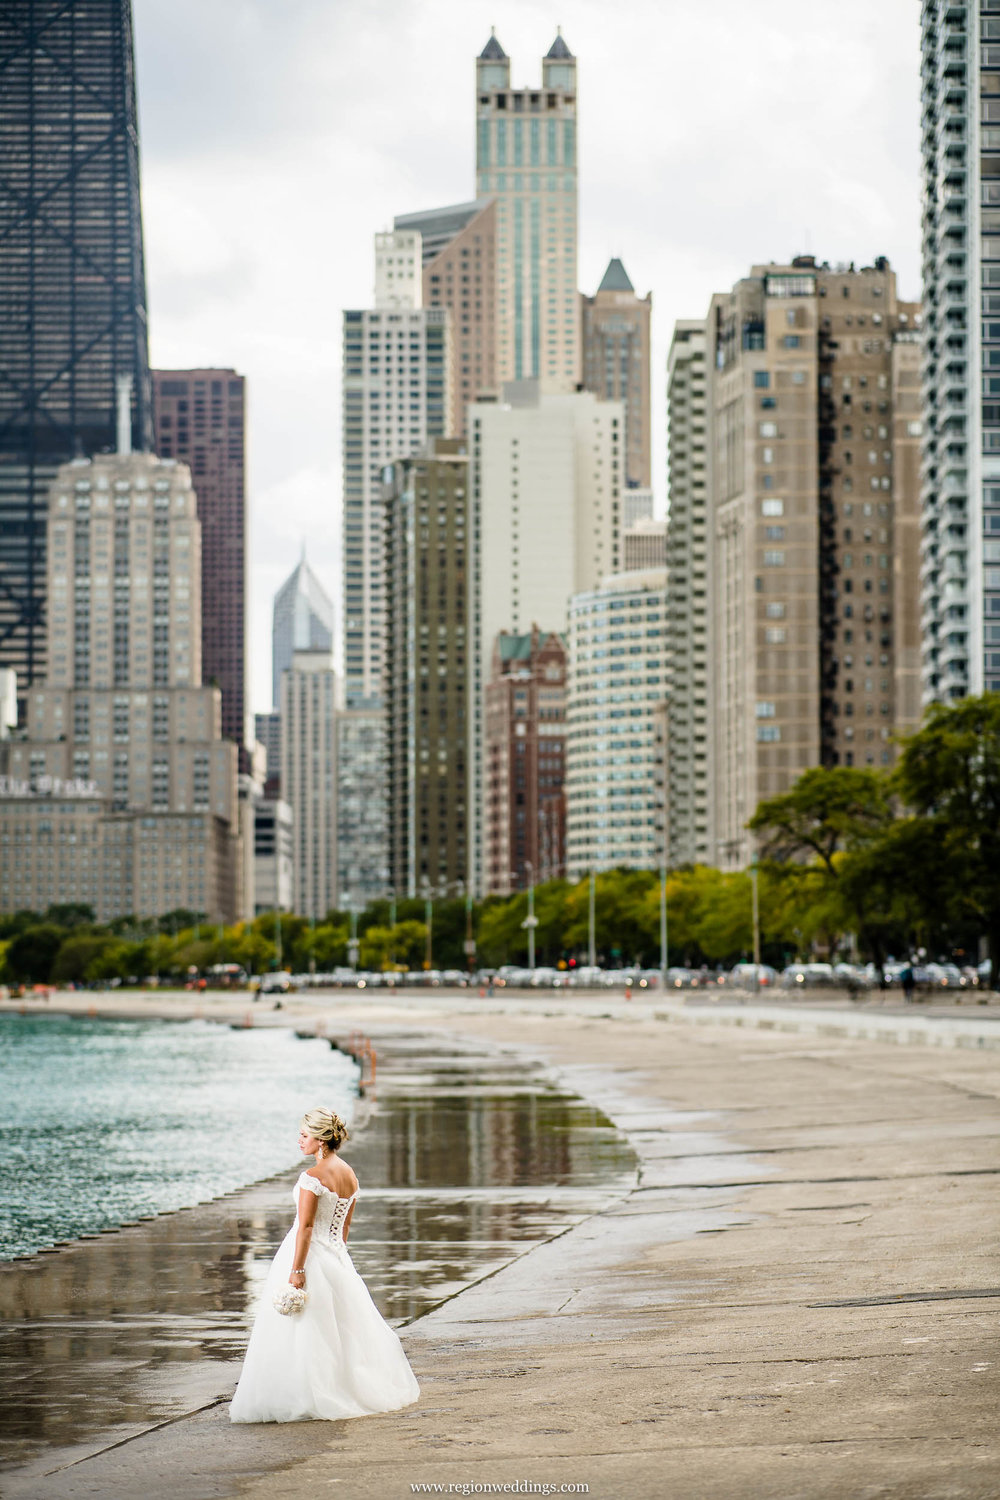 Bride alone on North Avenue Beach with Chicago skyscrapers in the background.